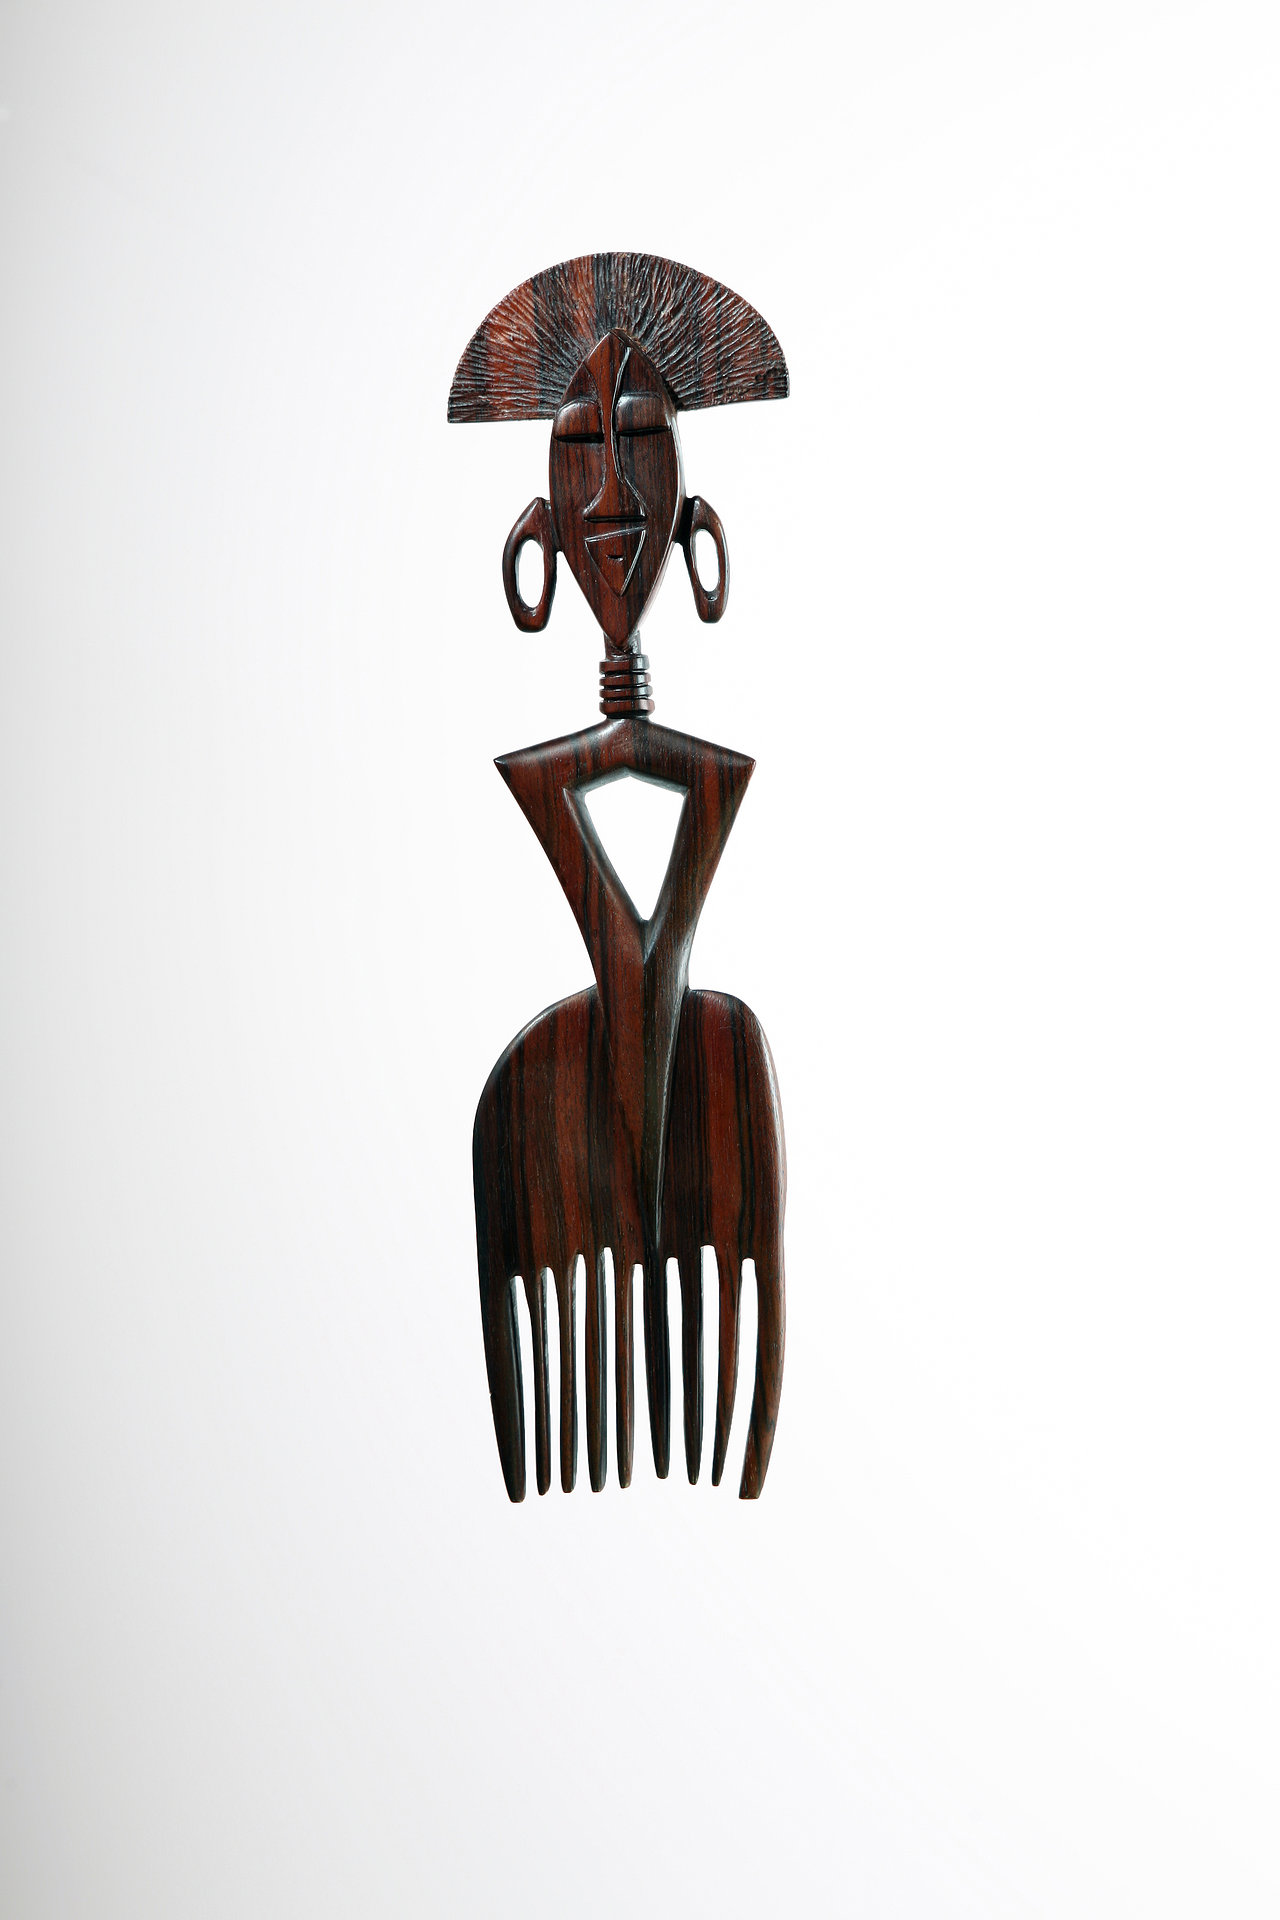 Stylized African comb